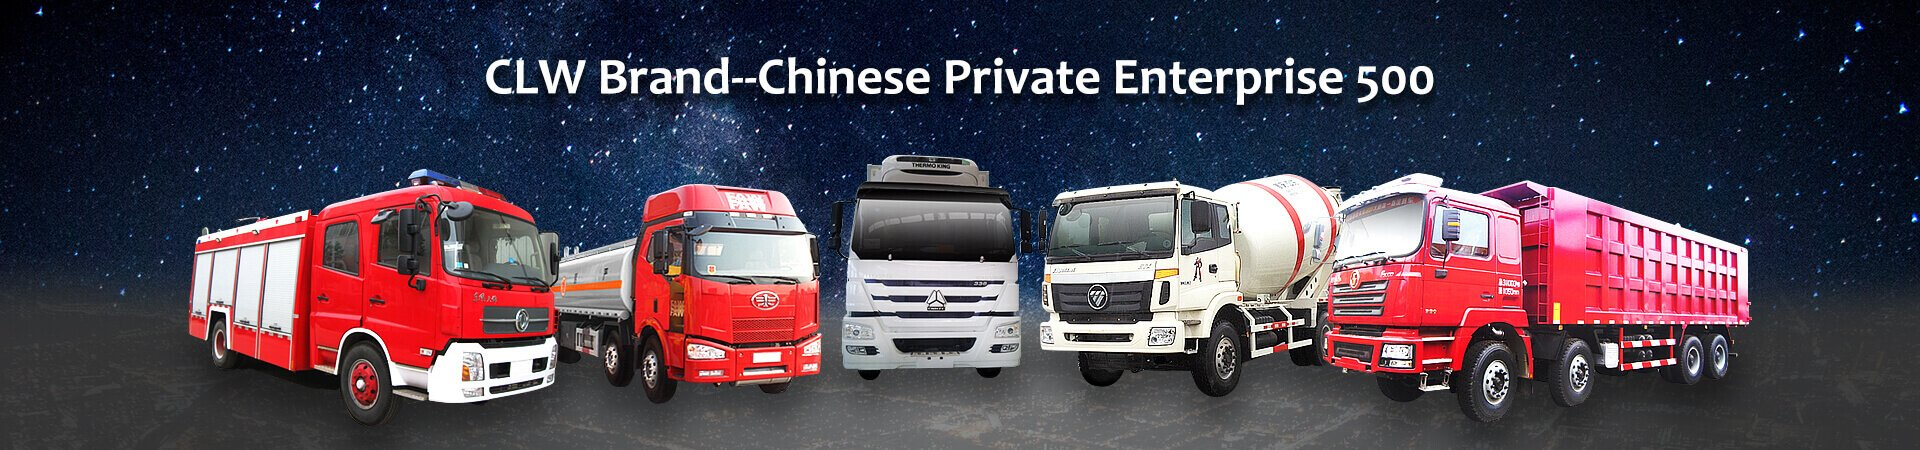 CLW Brand--Chinese Private Enterprise 500